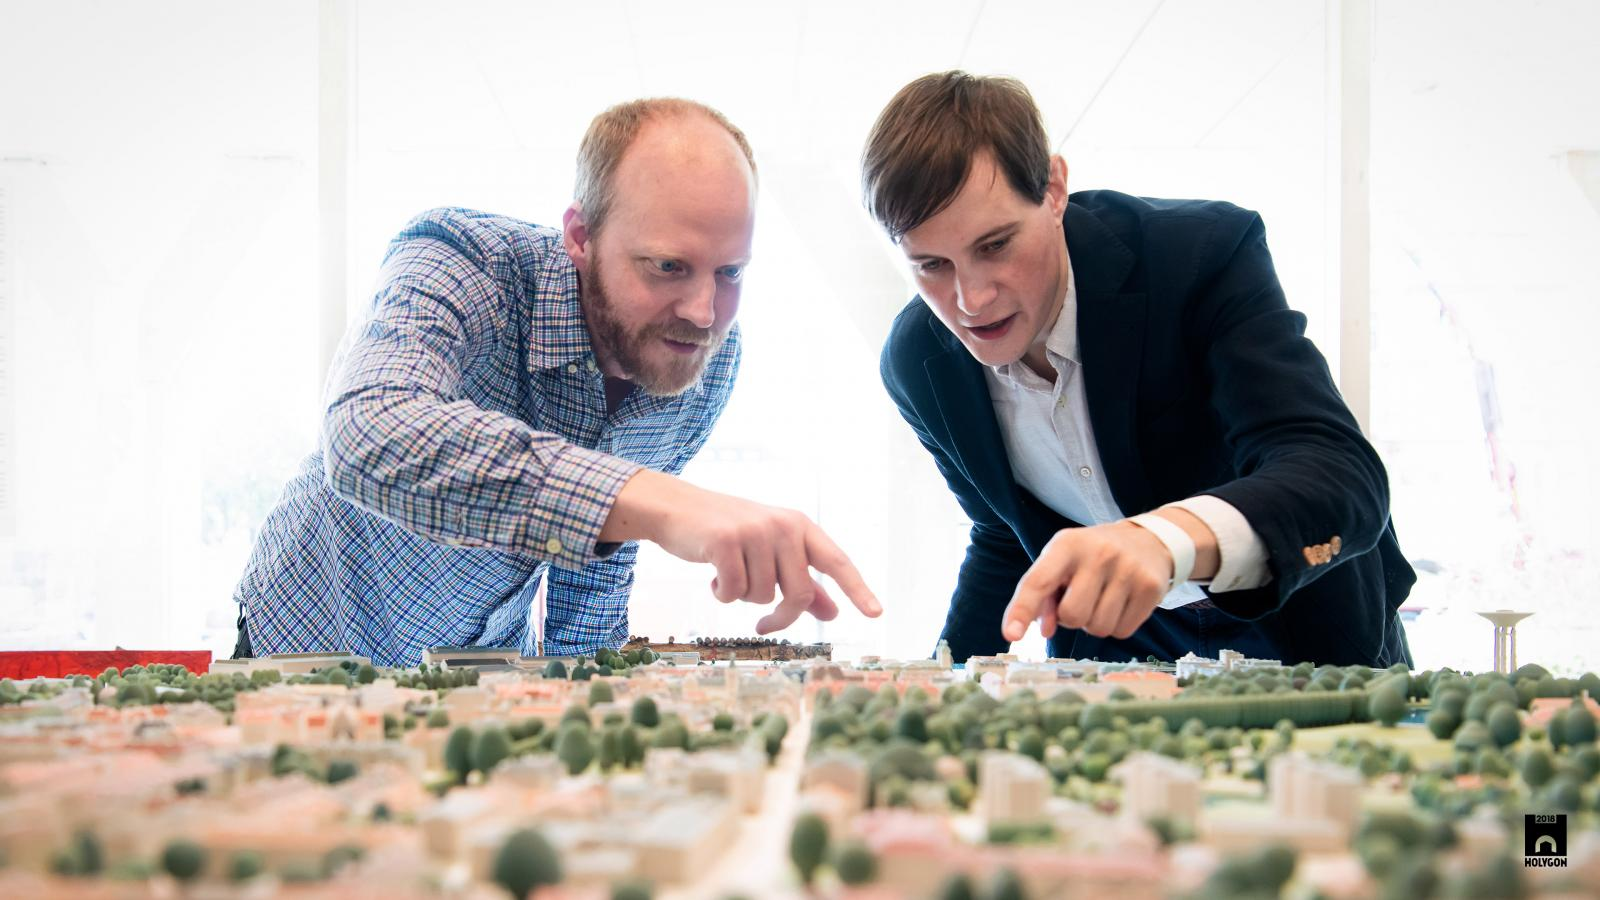 Felix and Anders inspect their 3D-printed model of the Swedish city of Landskrona during the unveiling ceremony.